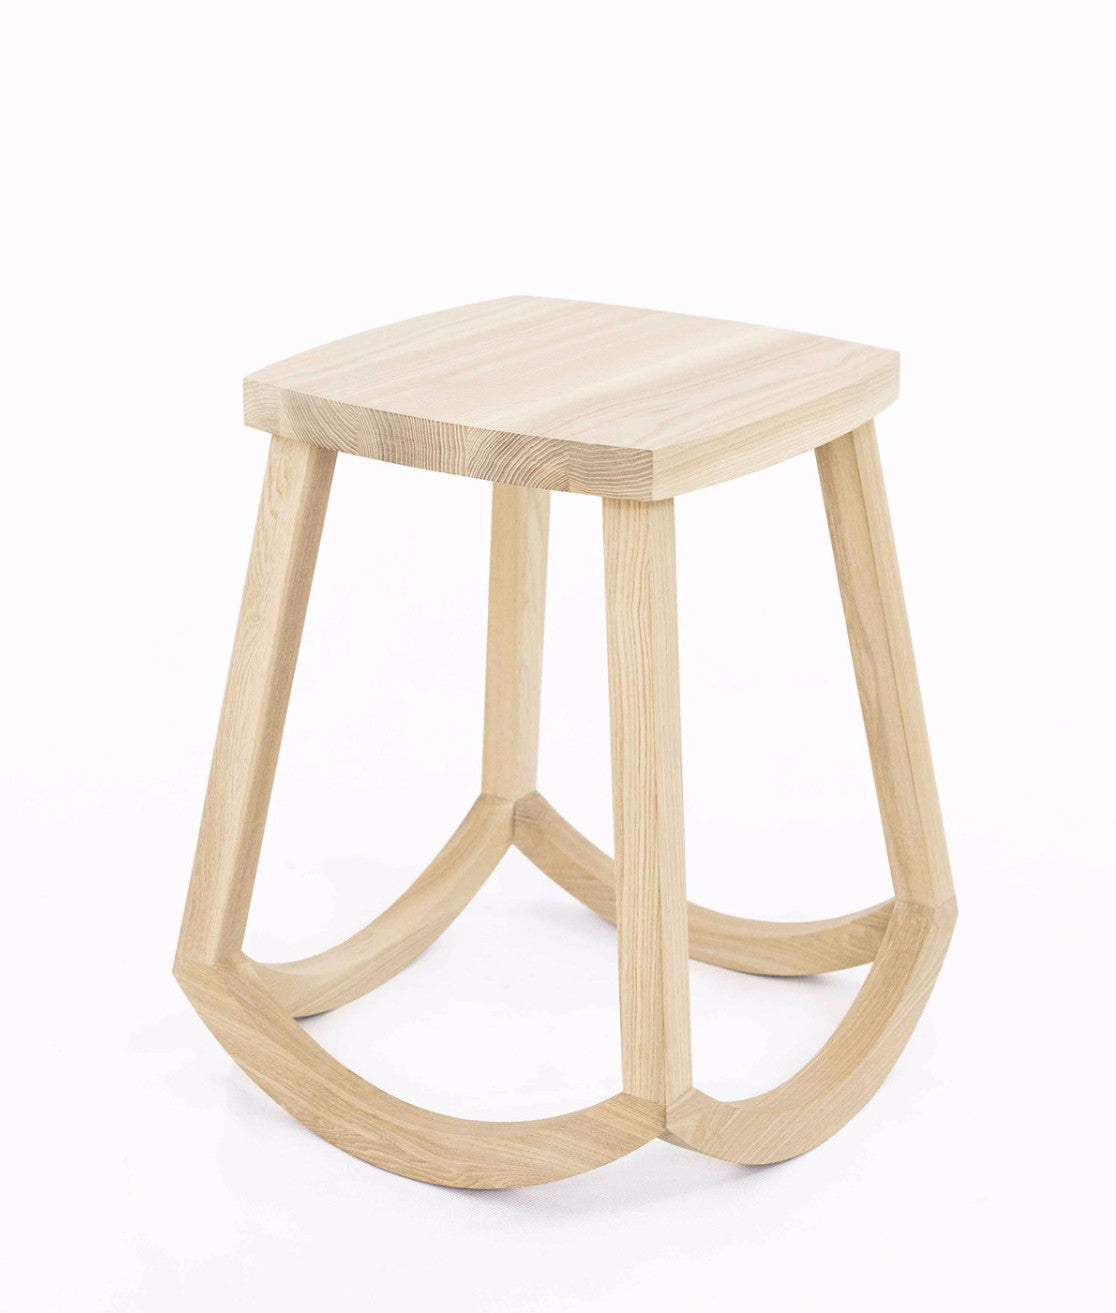 Ziinlife ITRUST STOOL NATURAL OAK